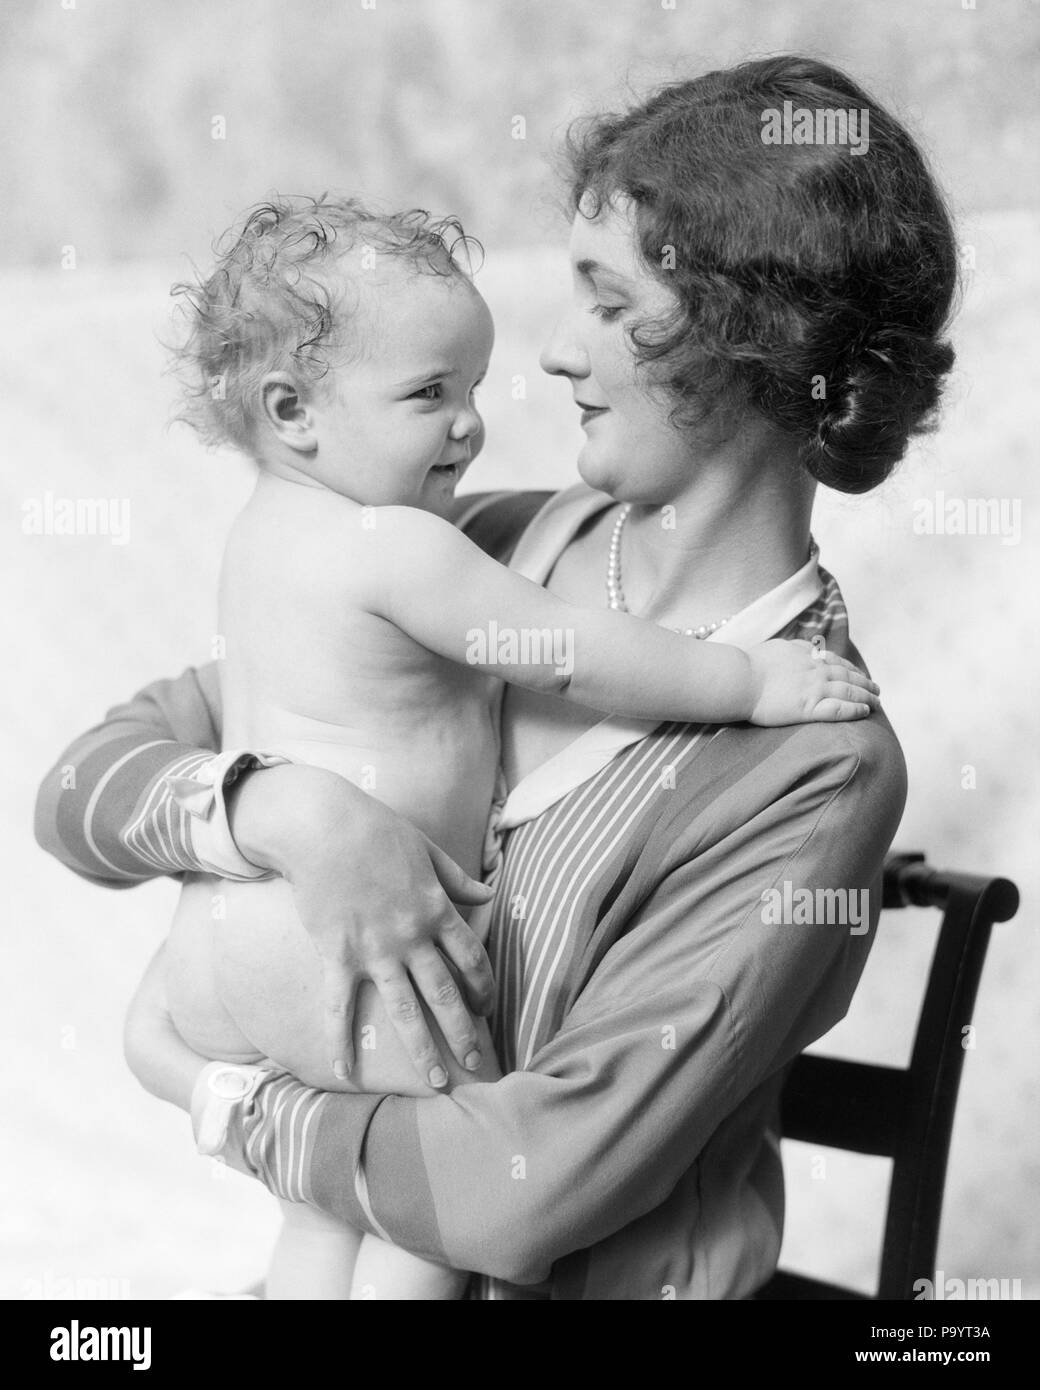 1920s WOMAN MOTHER SITTING IN CHAIR HOLDING SMILING BABY IN ARMS - b6492 HAR001 HARS YOUNG ADULT PLEASED JOY LIFESTYLE FEMALES PROUD HEALTHINESS HOME LIFE HALF-LENGTH LADIES DAUGHTERS PERSONS INSPIRATION CARING CONFIDENCE EMBRACING B&W BRUNETTE HAPPINESS WELLNESS CHEERFUL IN SMILES FACE TO FACE CONNECTION JOYFUL STYLISH JUVENILES MOMS TOGETHERNESS YOUNG ADULT WOMAN BLACK AND WHITE CAUCASIAN ETHNICITY HAR001 OLD FASHIONED Stock Photo